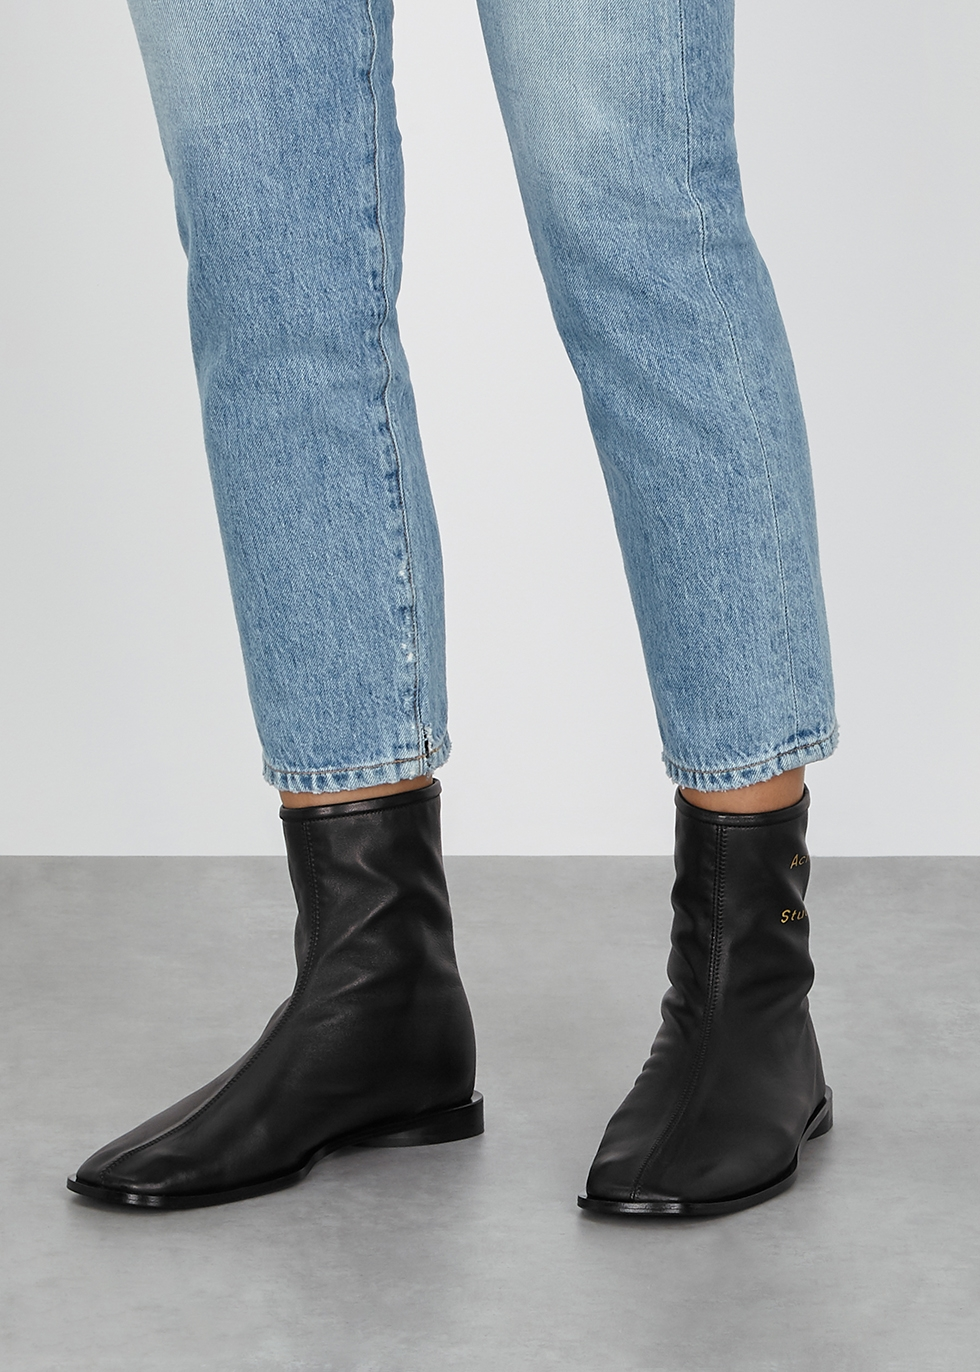 acne rider low boots